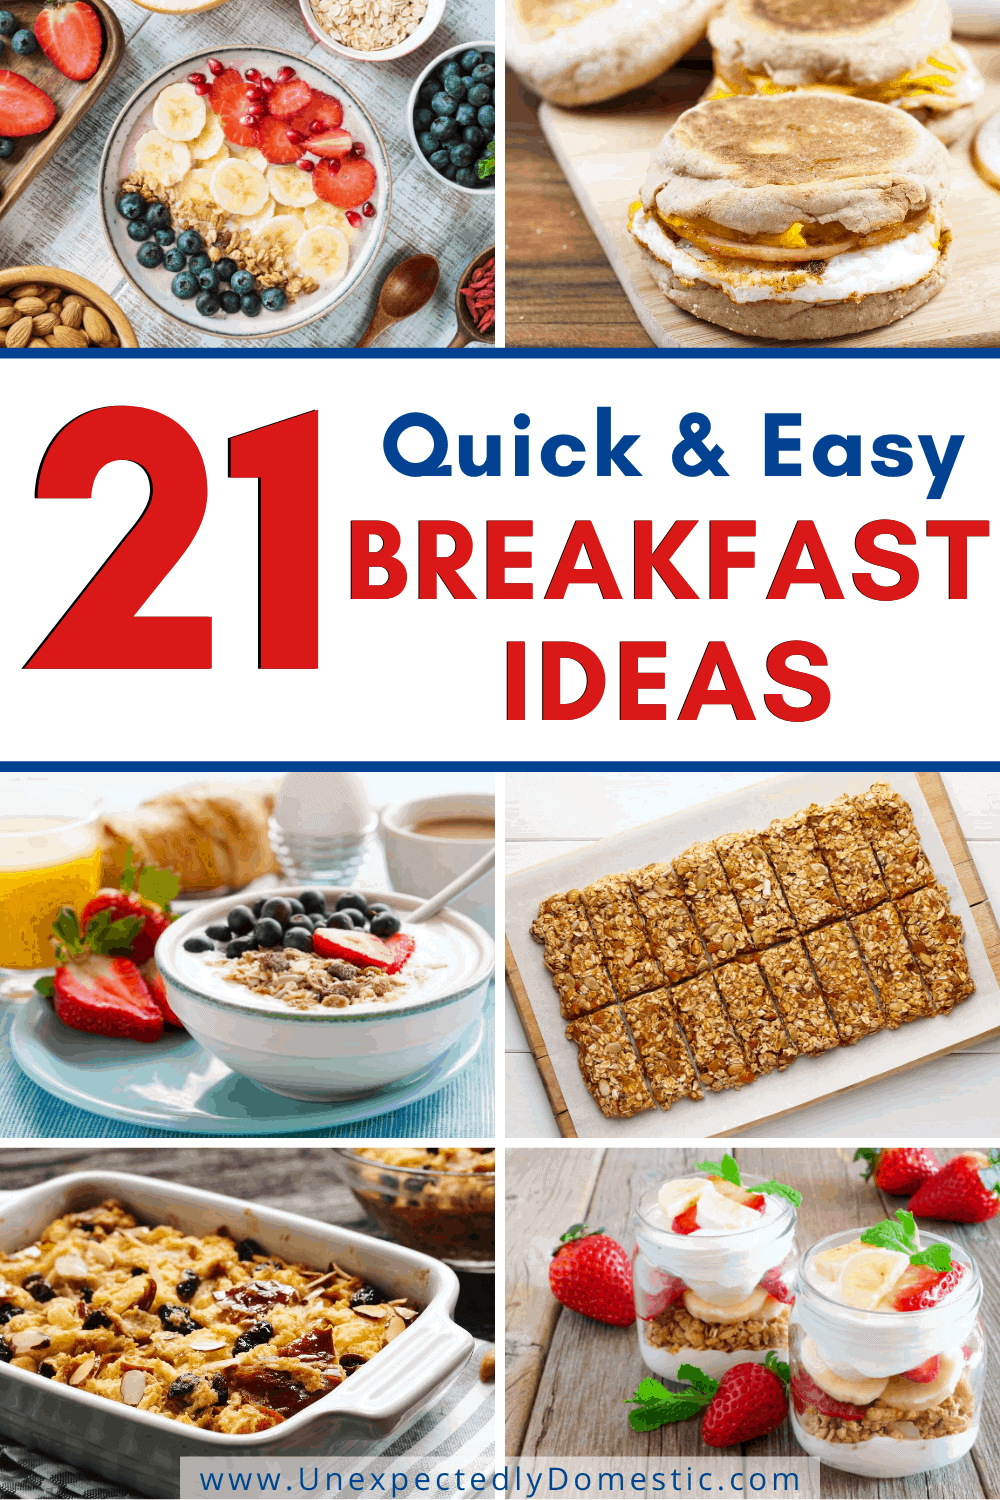 Quick and simple breakfast ideas! This list of breakfast food ideas offers lots of options for the most important meal of the day.